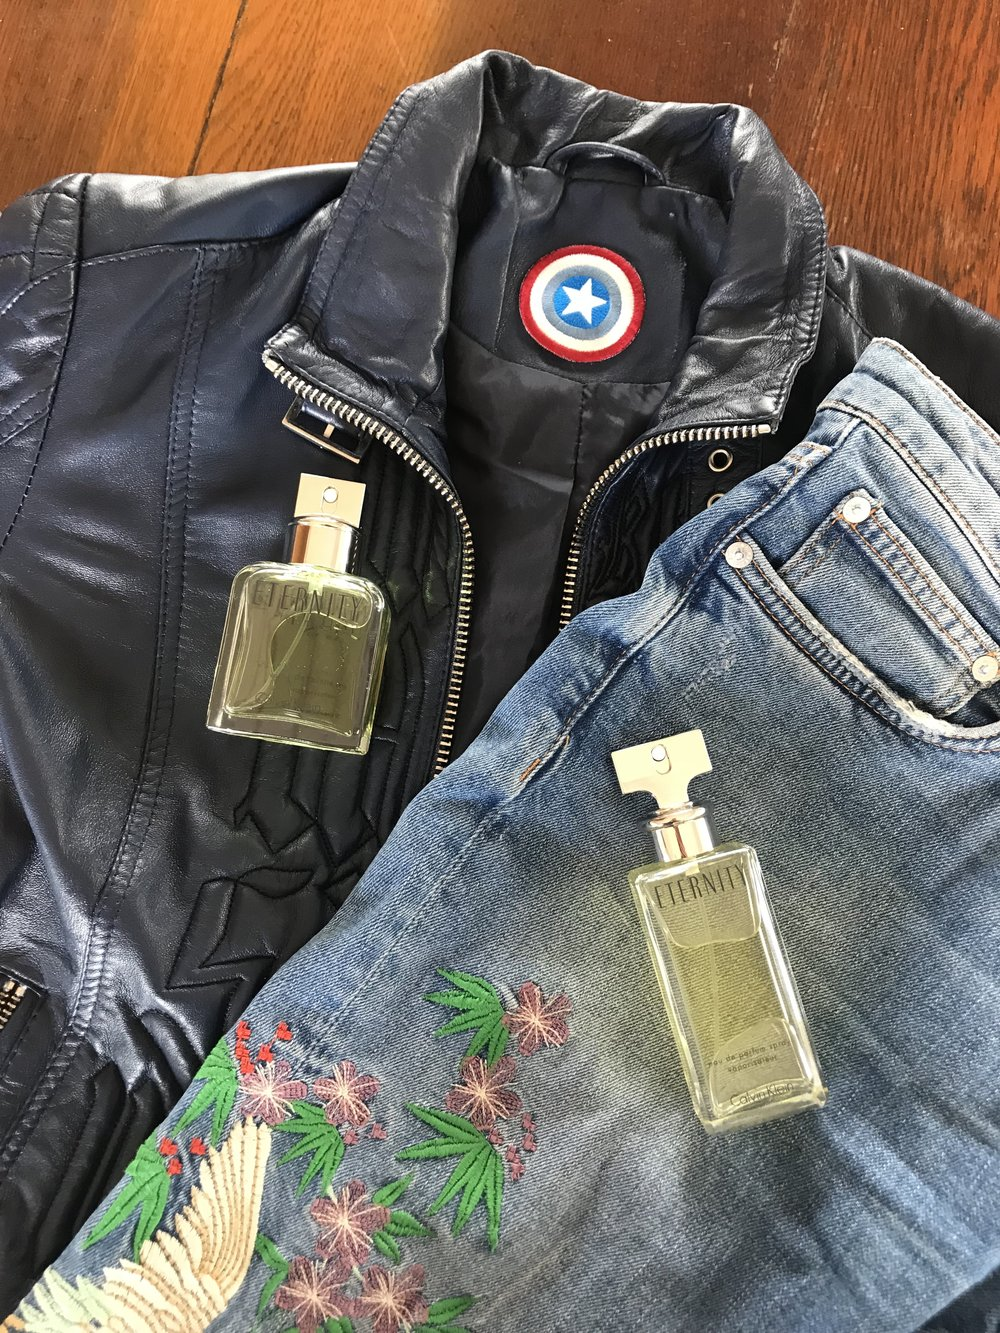 Eternity gold coloured fragrance bottle on a pair of blue jeans with a floral print on them. Black Leather jacket underneath the blue jeans with the eternity gold coloured fragrance on the jacket with a hardwood floor showing